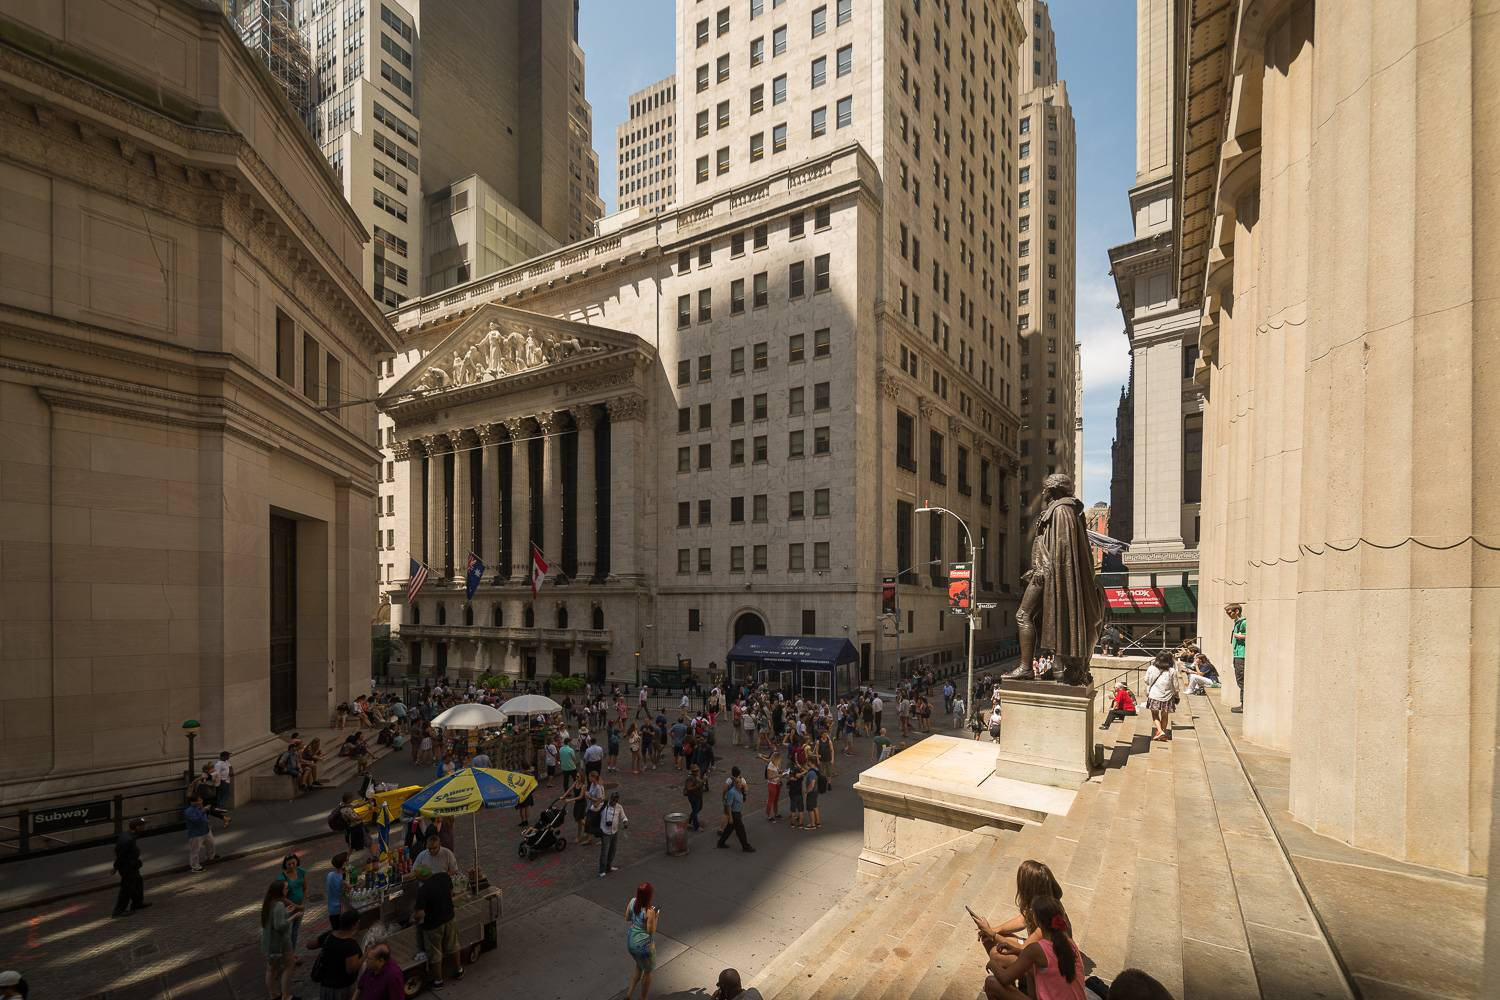 Image of the New York Stock Exchange building.